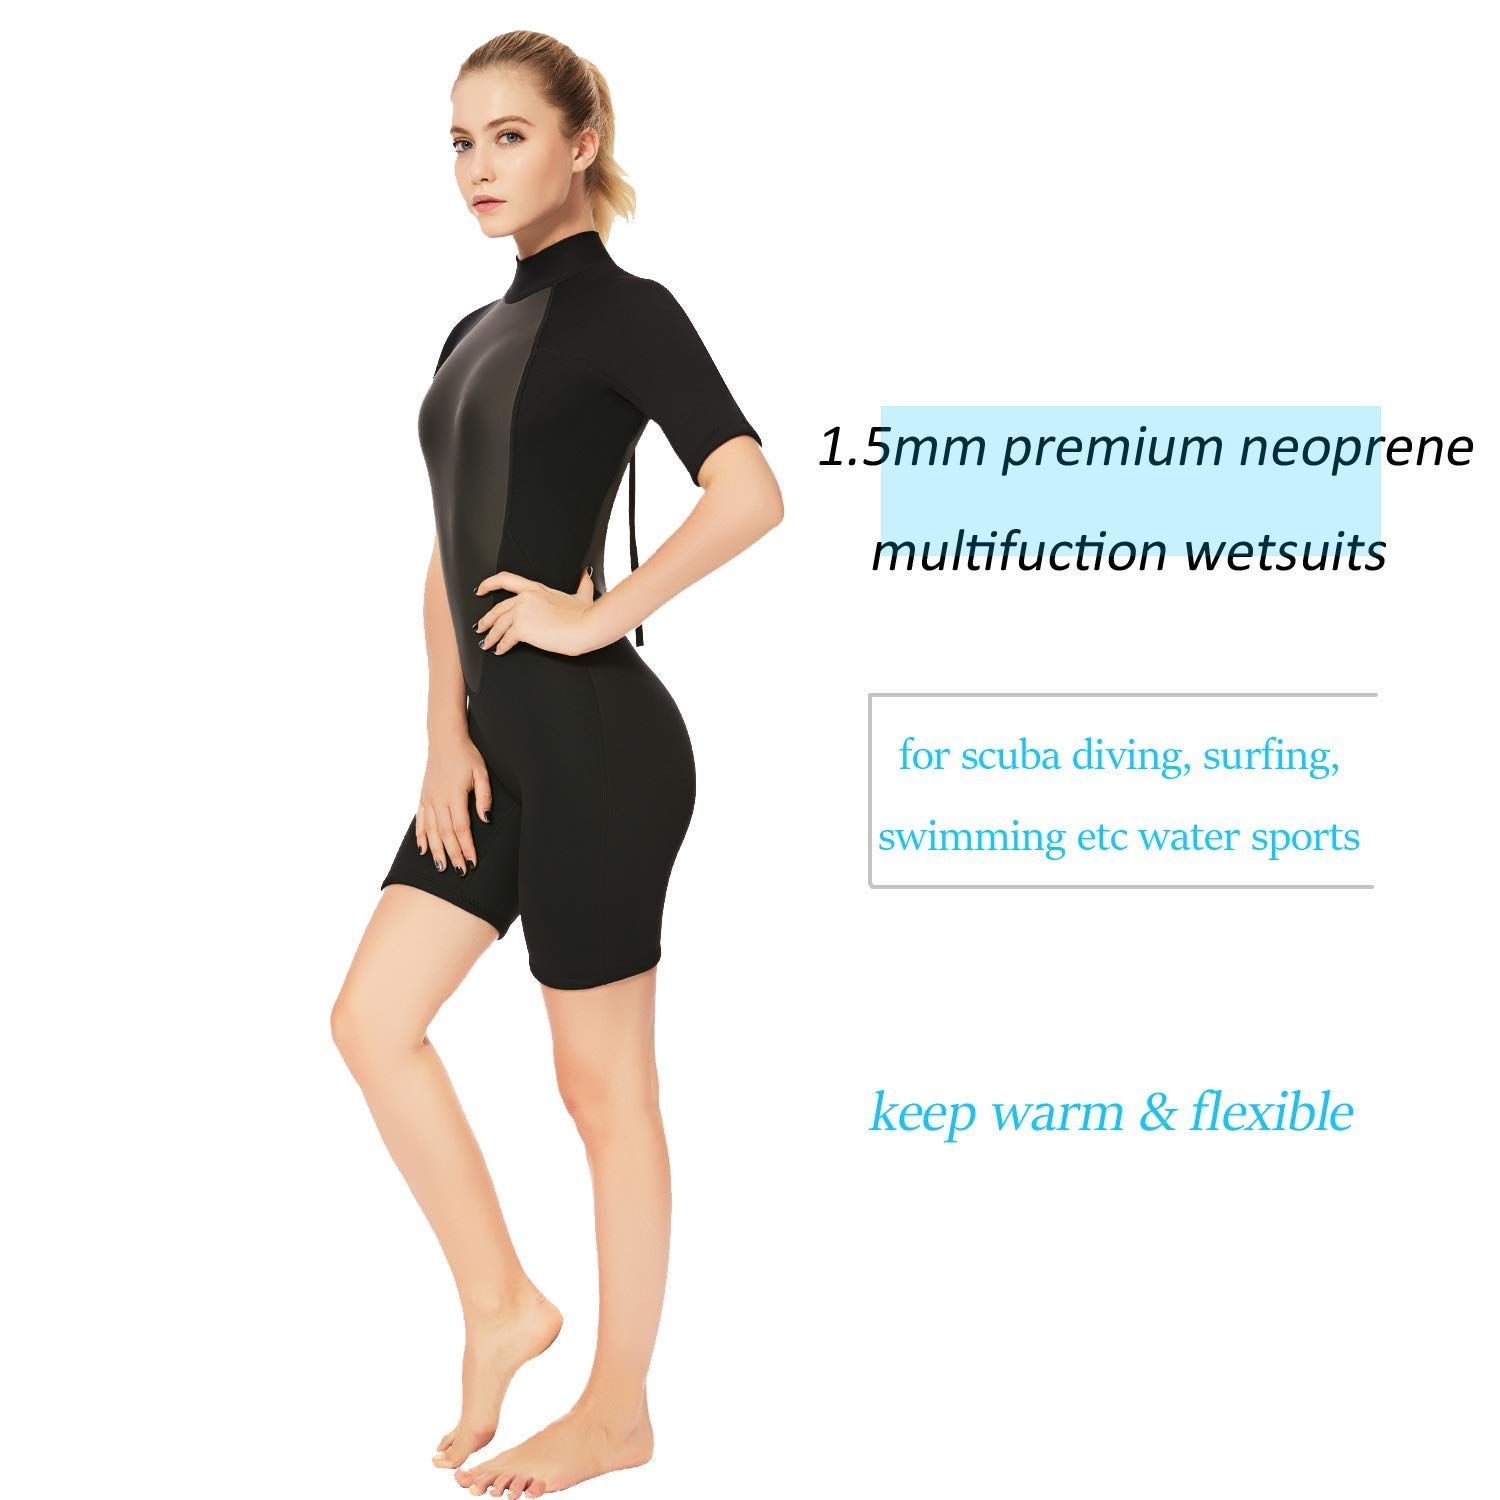 Realon 2mm Shorty Wetsuit Women CR Neoprene Surfing Scuba Diving Snorkeling Swimming Suit (2mm Shorty Black, Medium) by Realon (Image #6)